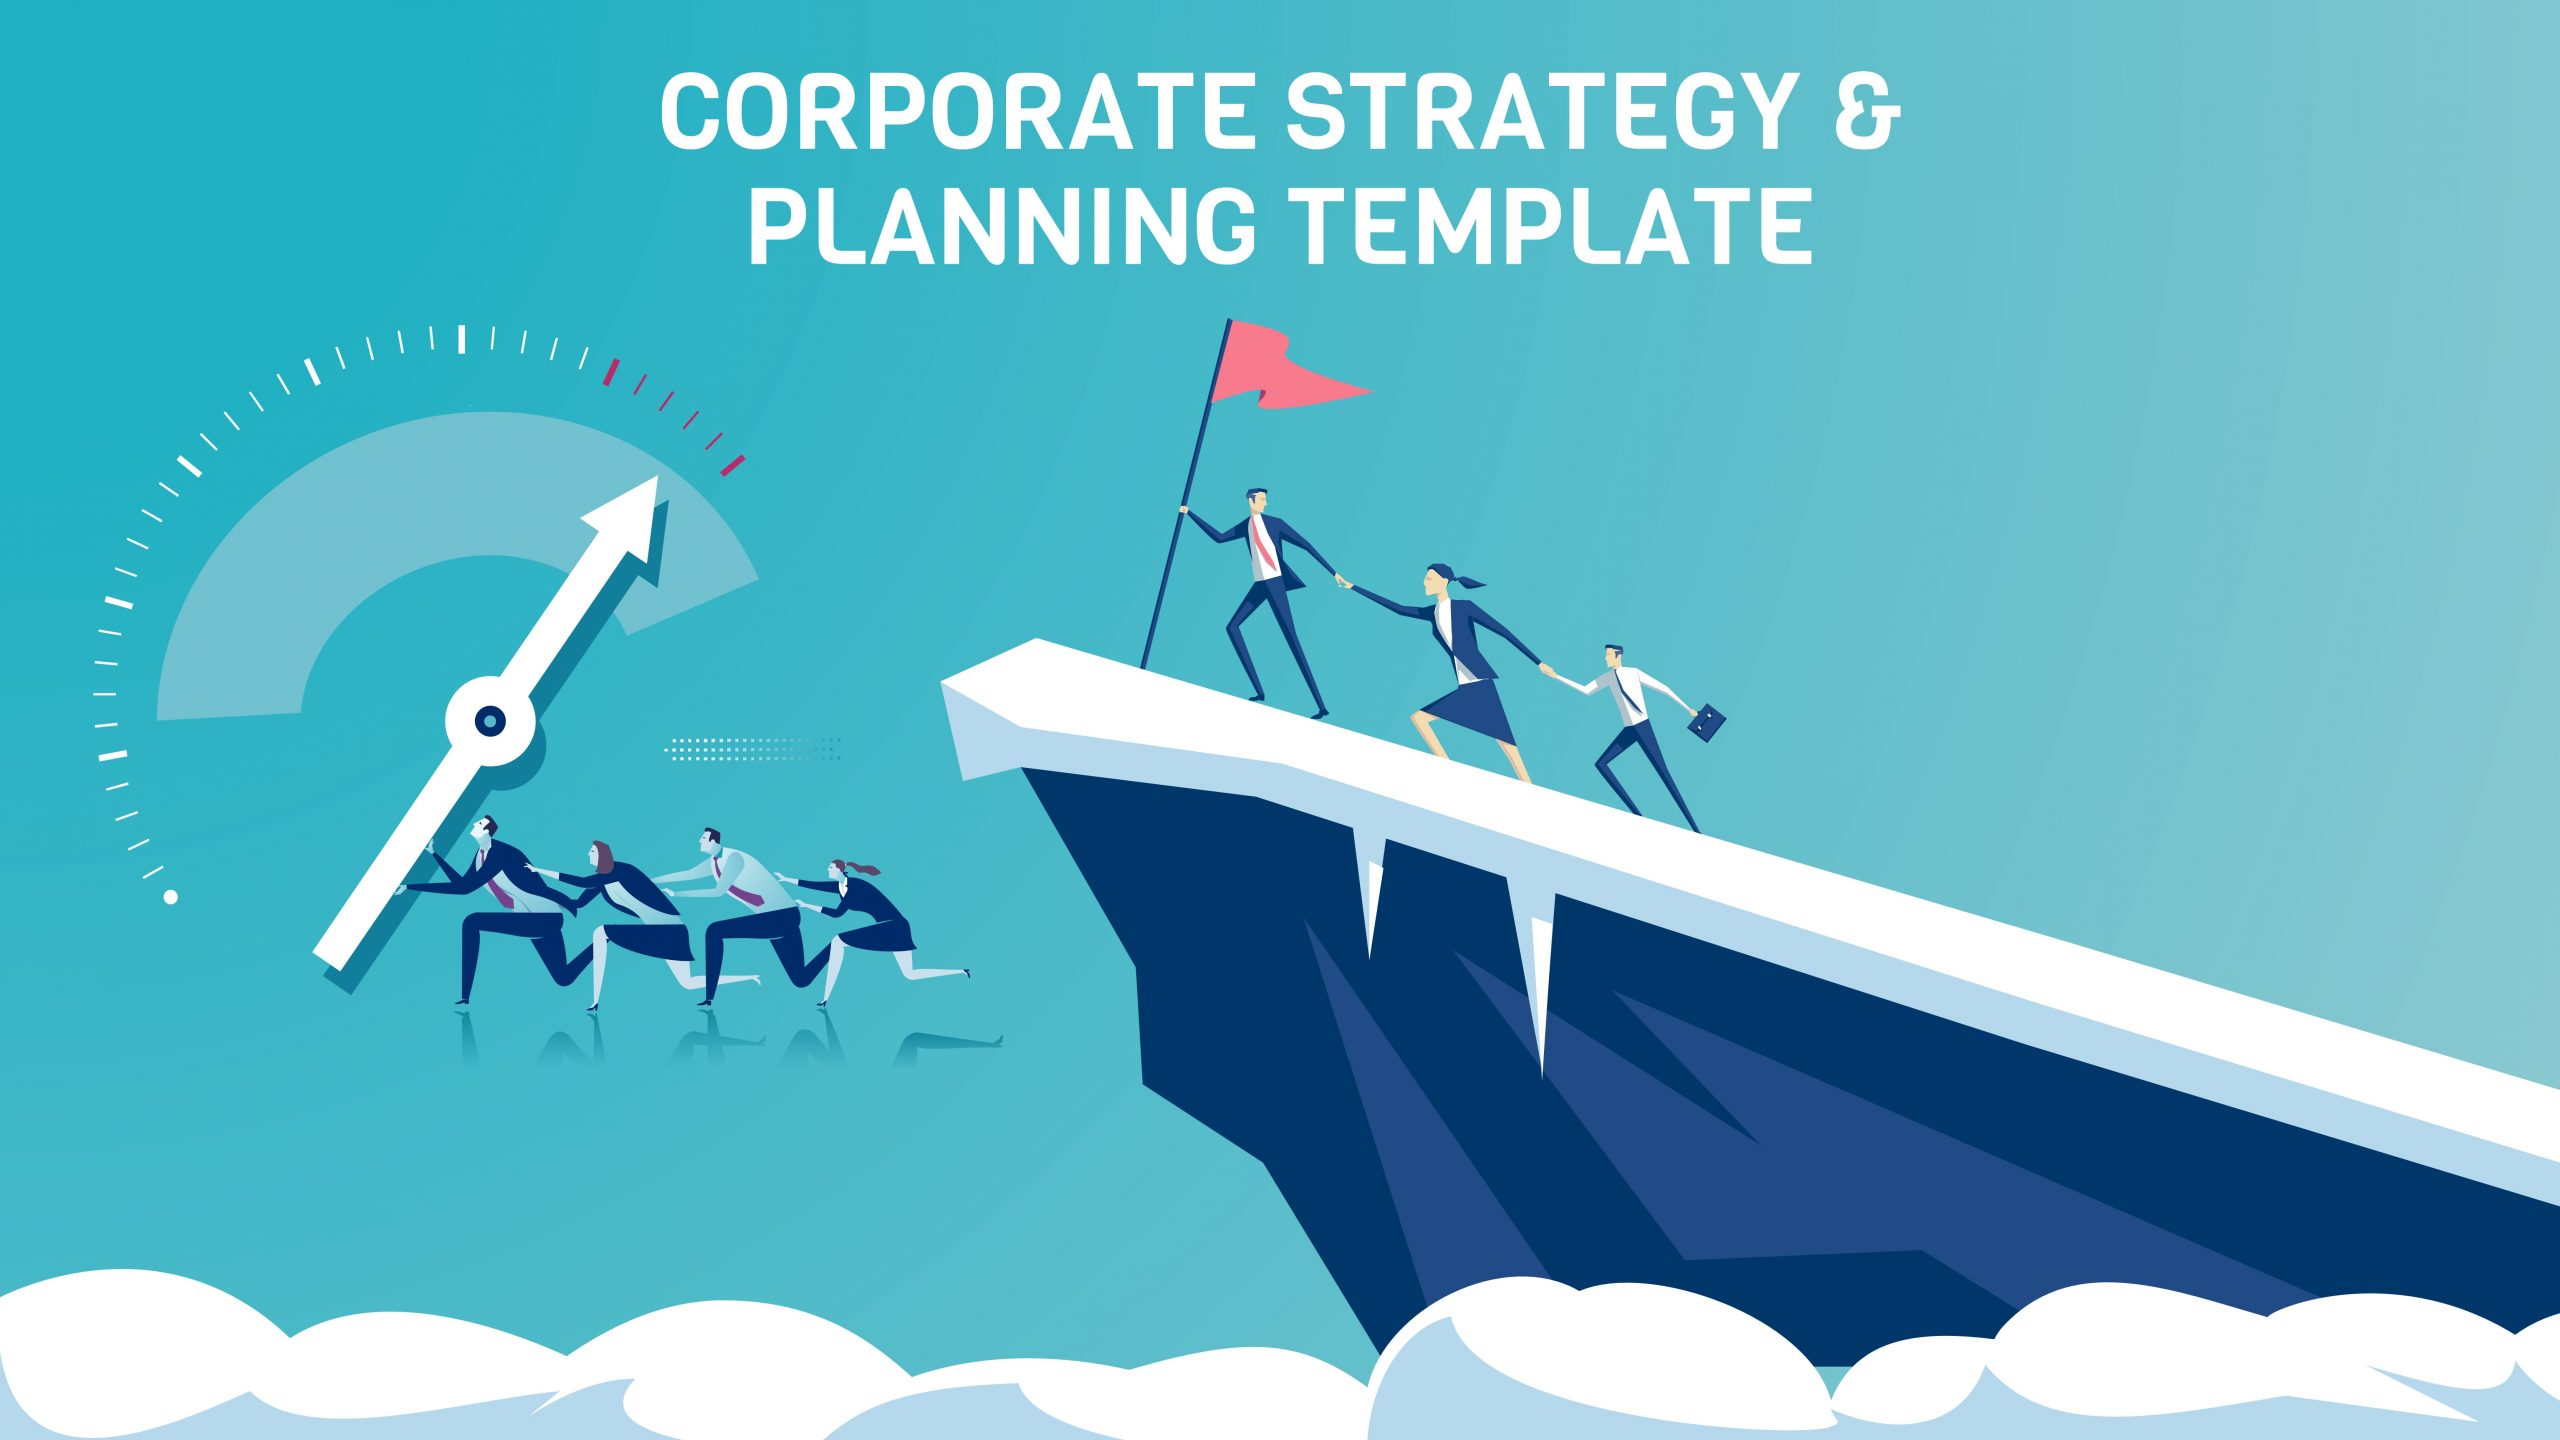 Free presentation template of Corporate Strategy & Planning